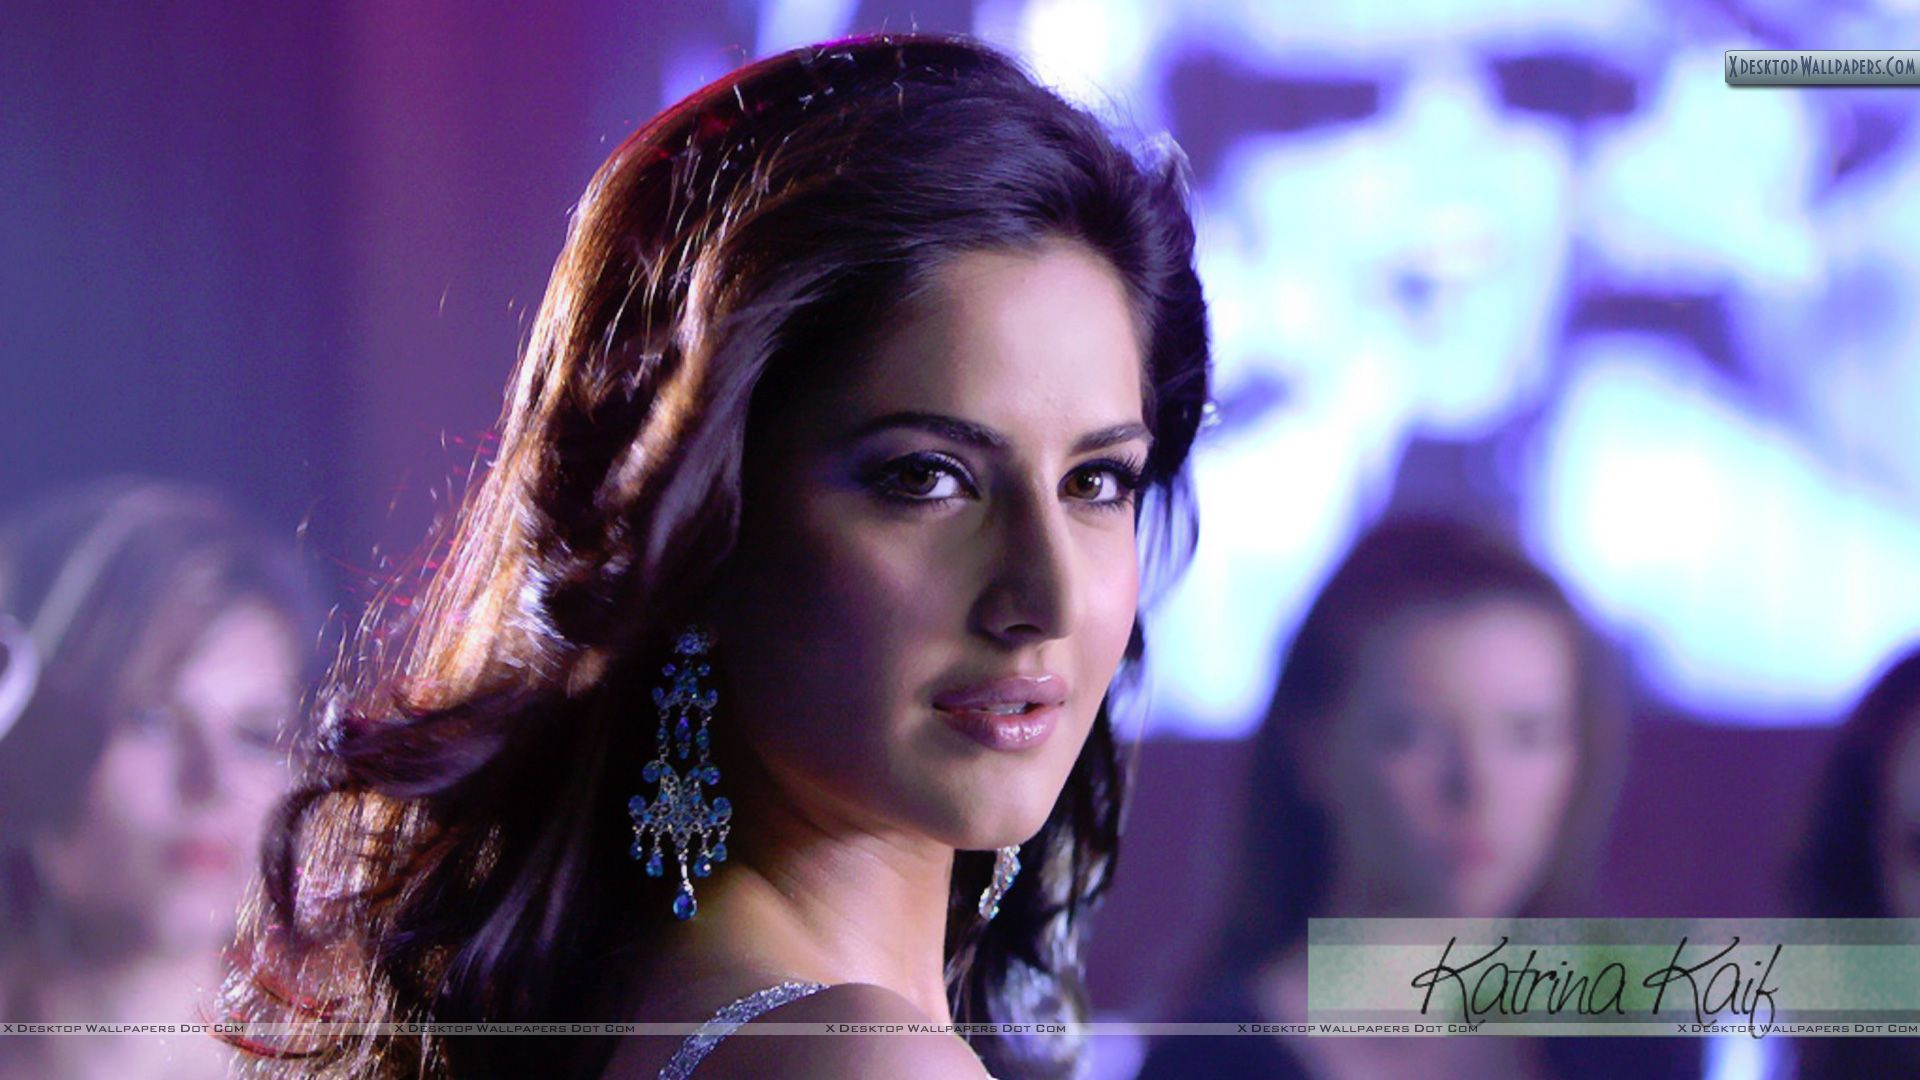 katrina kaif wallpapers, photos & images in hd